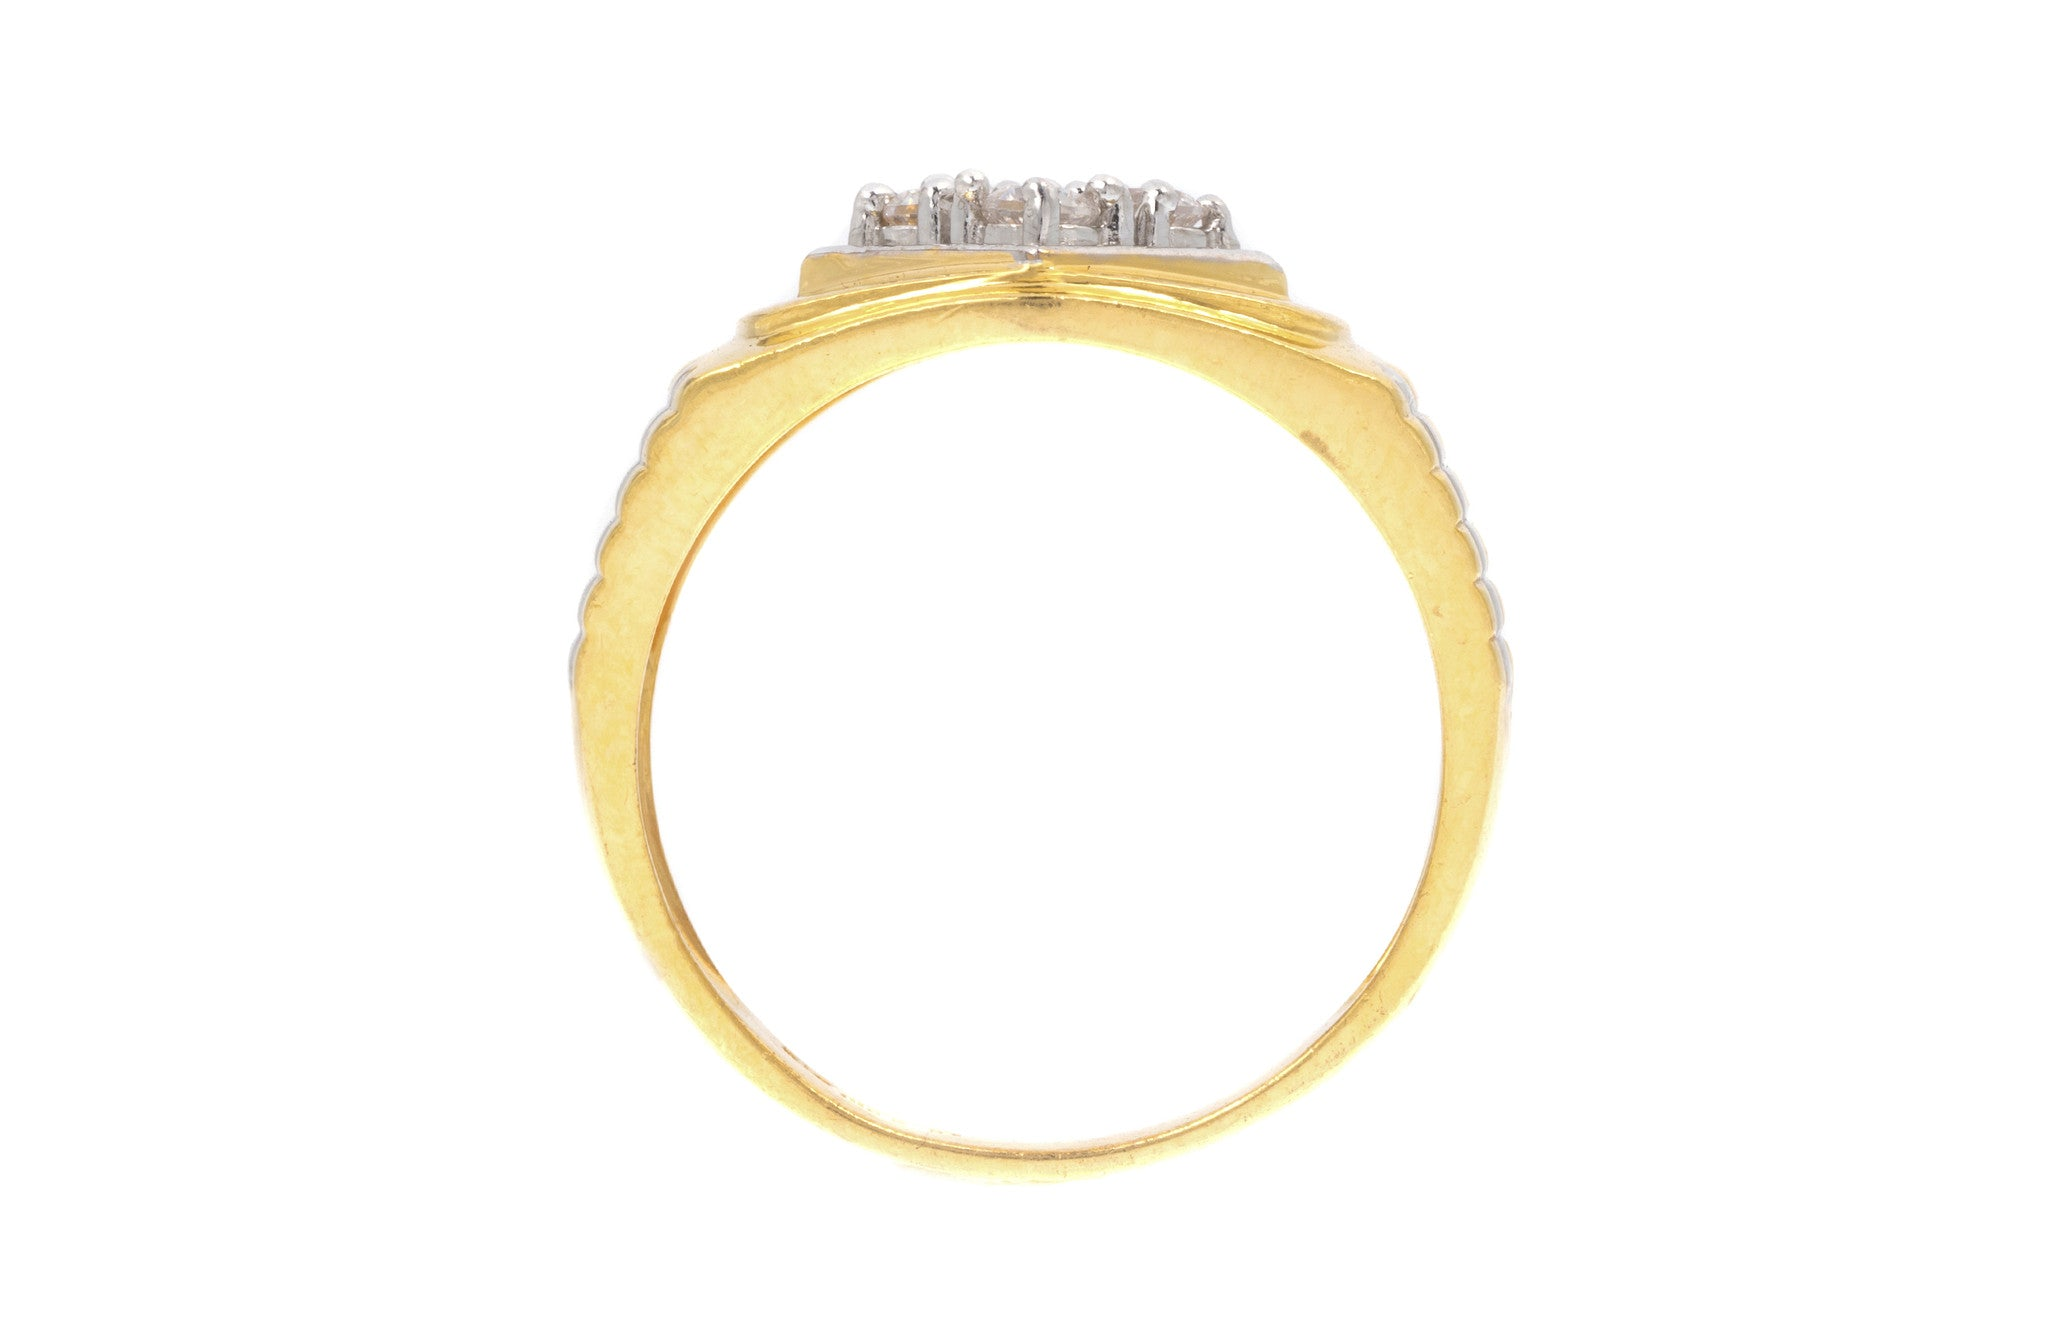 22ct Yellow Gold Cubic Zirconia Men's Ring, Minar Jewellers - 5